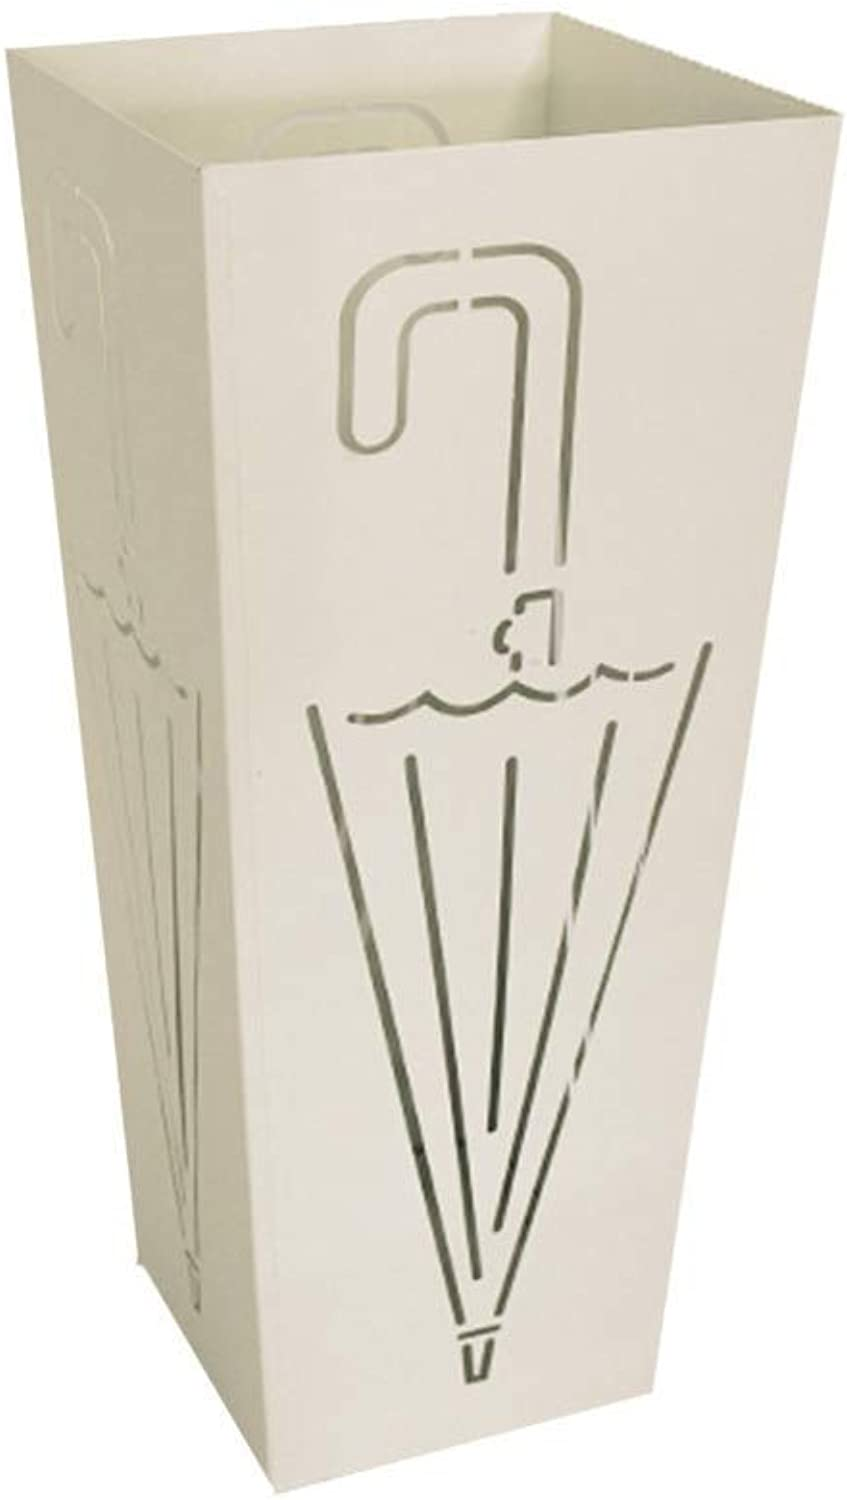 Umbrella Stand Umbrella Rack Modern Freestanding Metal Umbrella Rack, Household Living Room, Doorway Umbrella Storage Stands